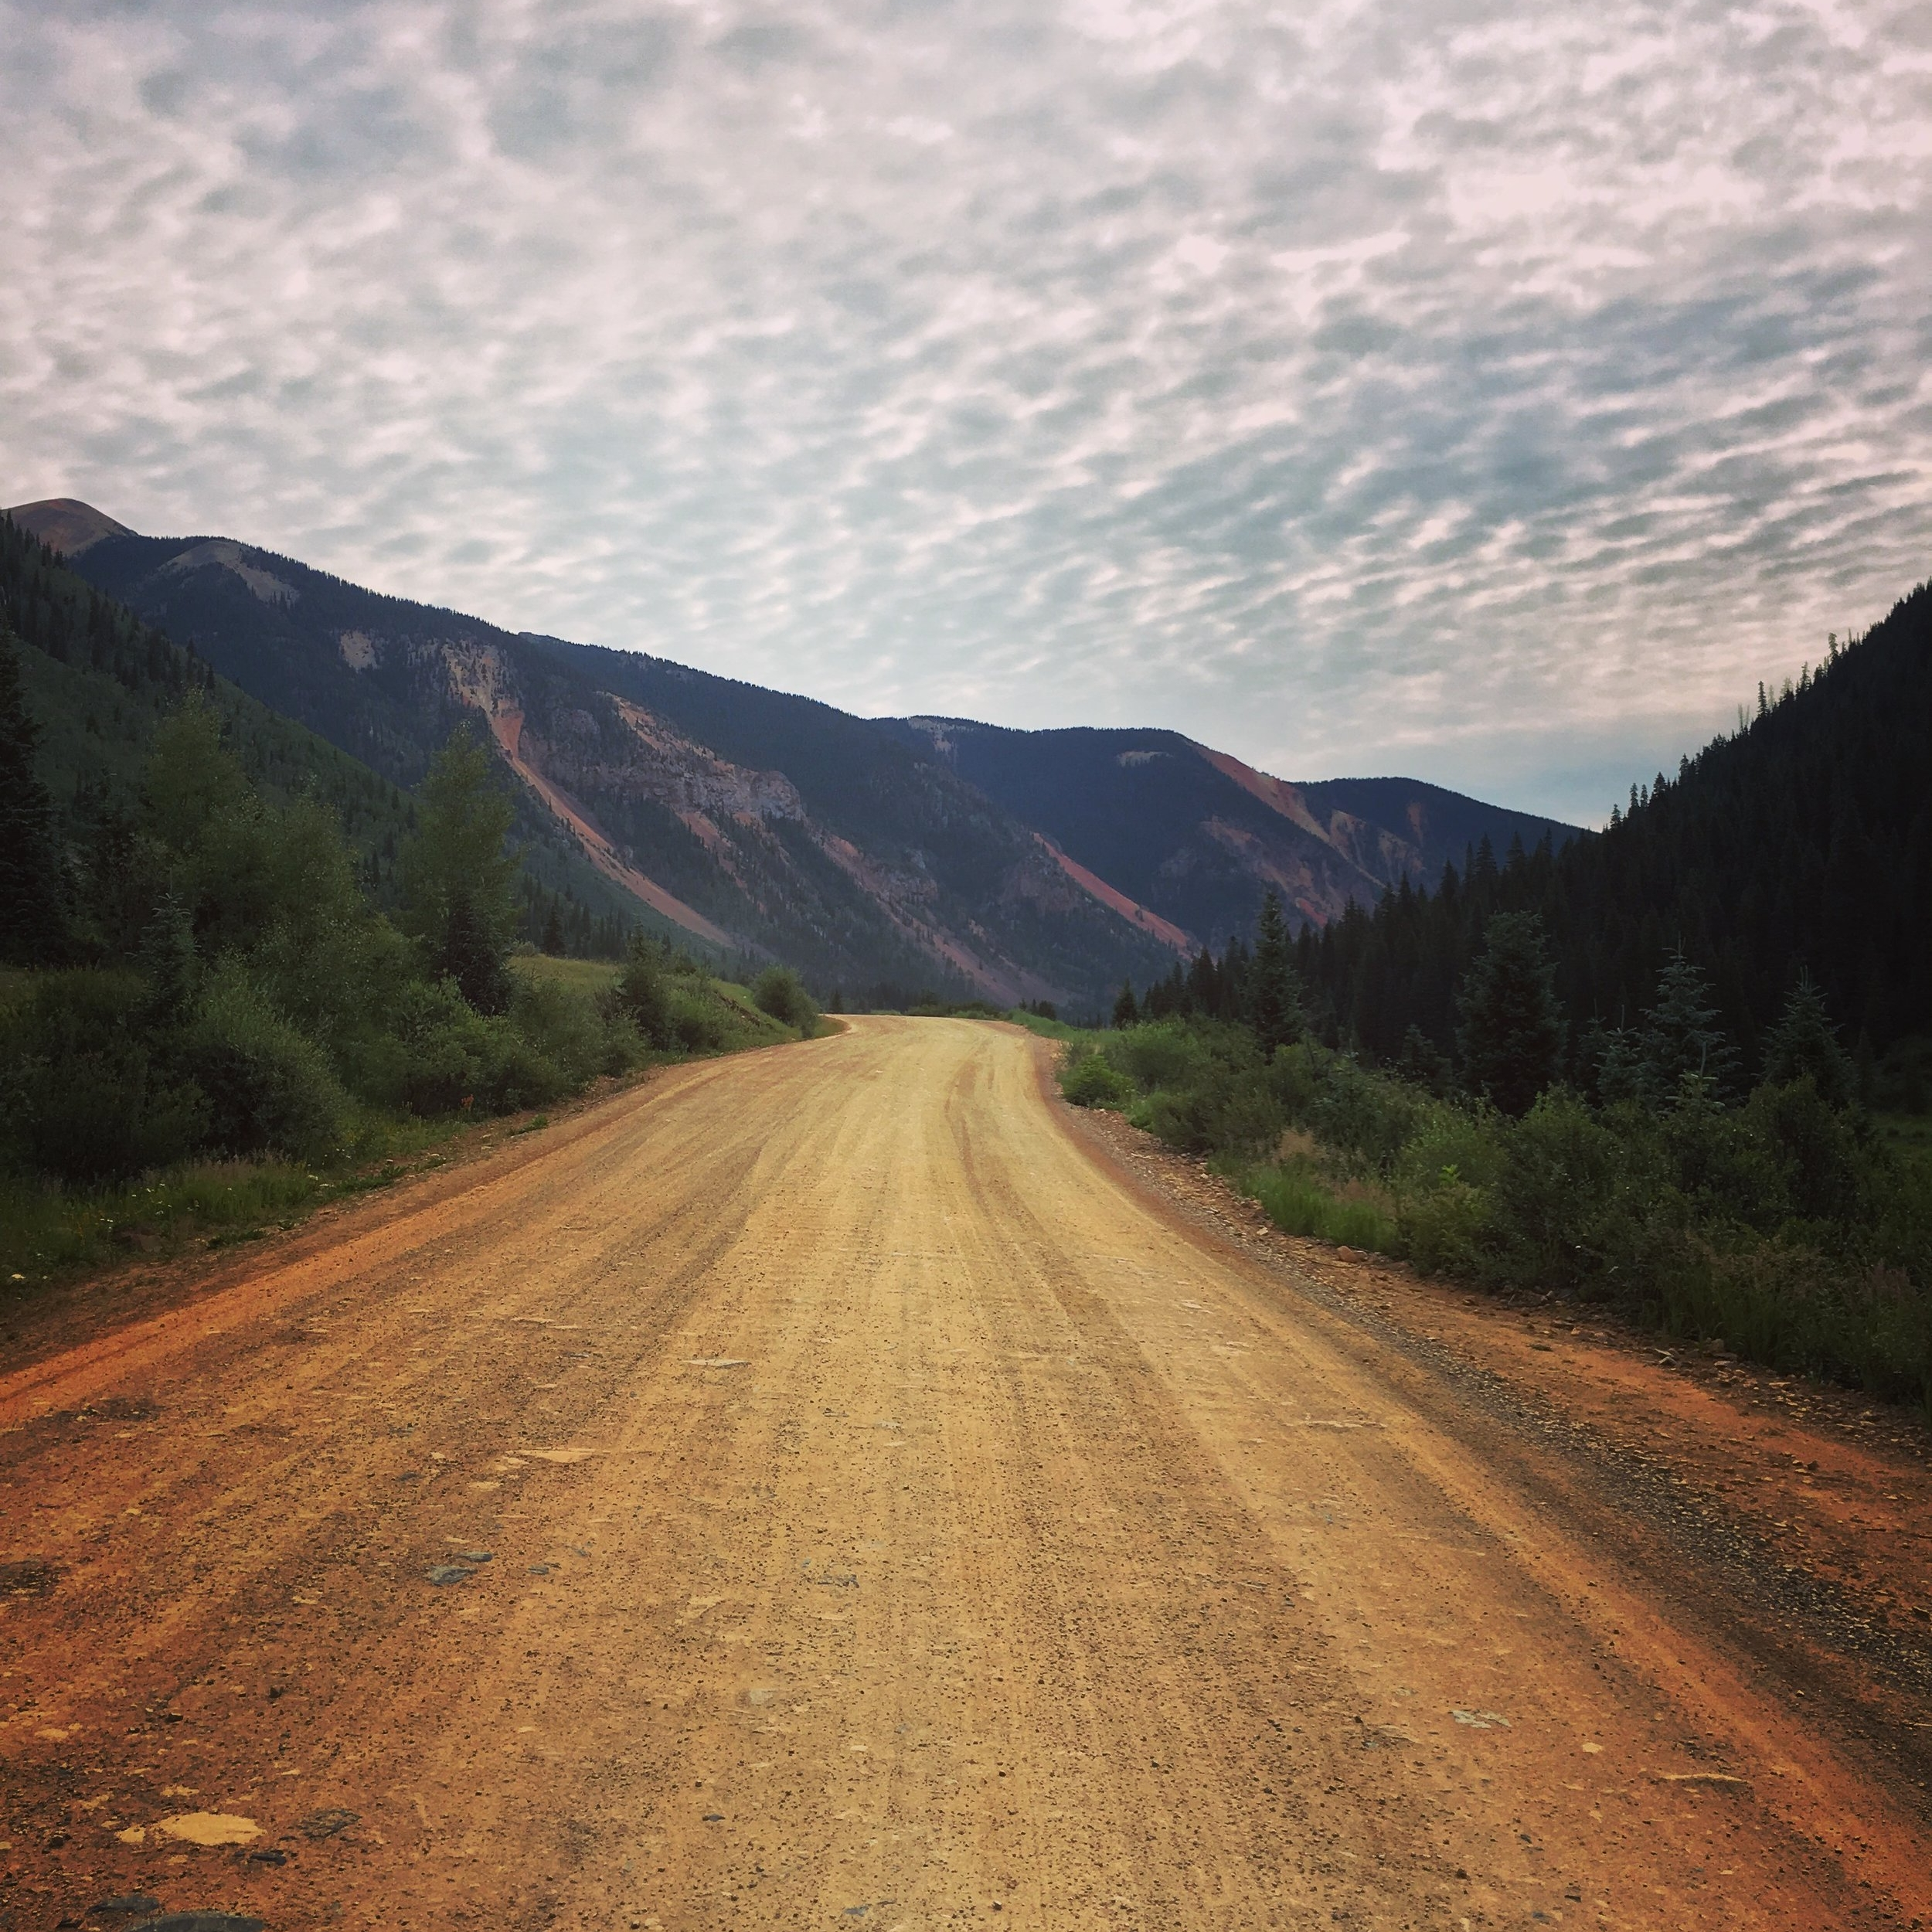 Forest Service Road, San Juan Mountains, Southern Colorado  (photo by Gabrielle Pietrangelo)